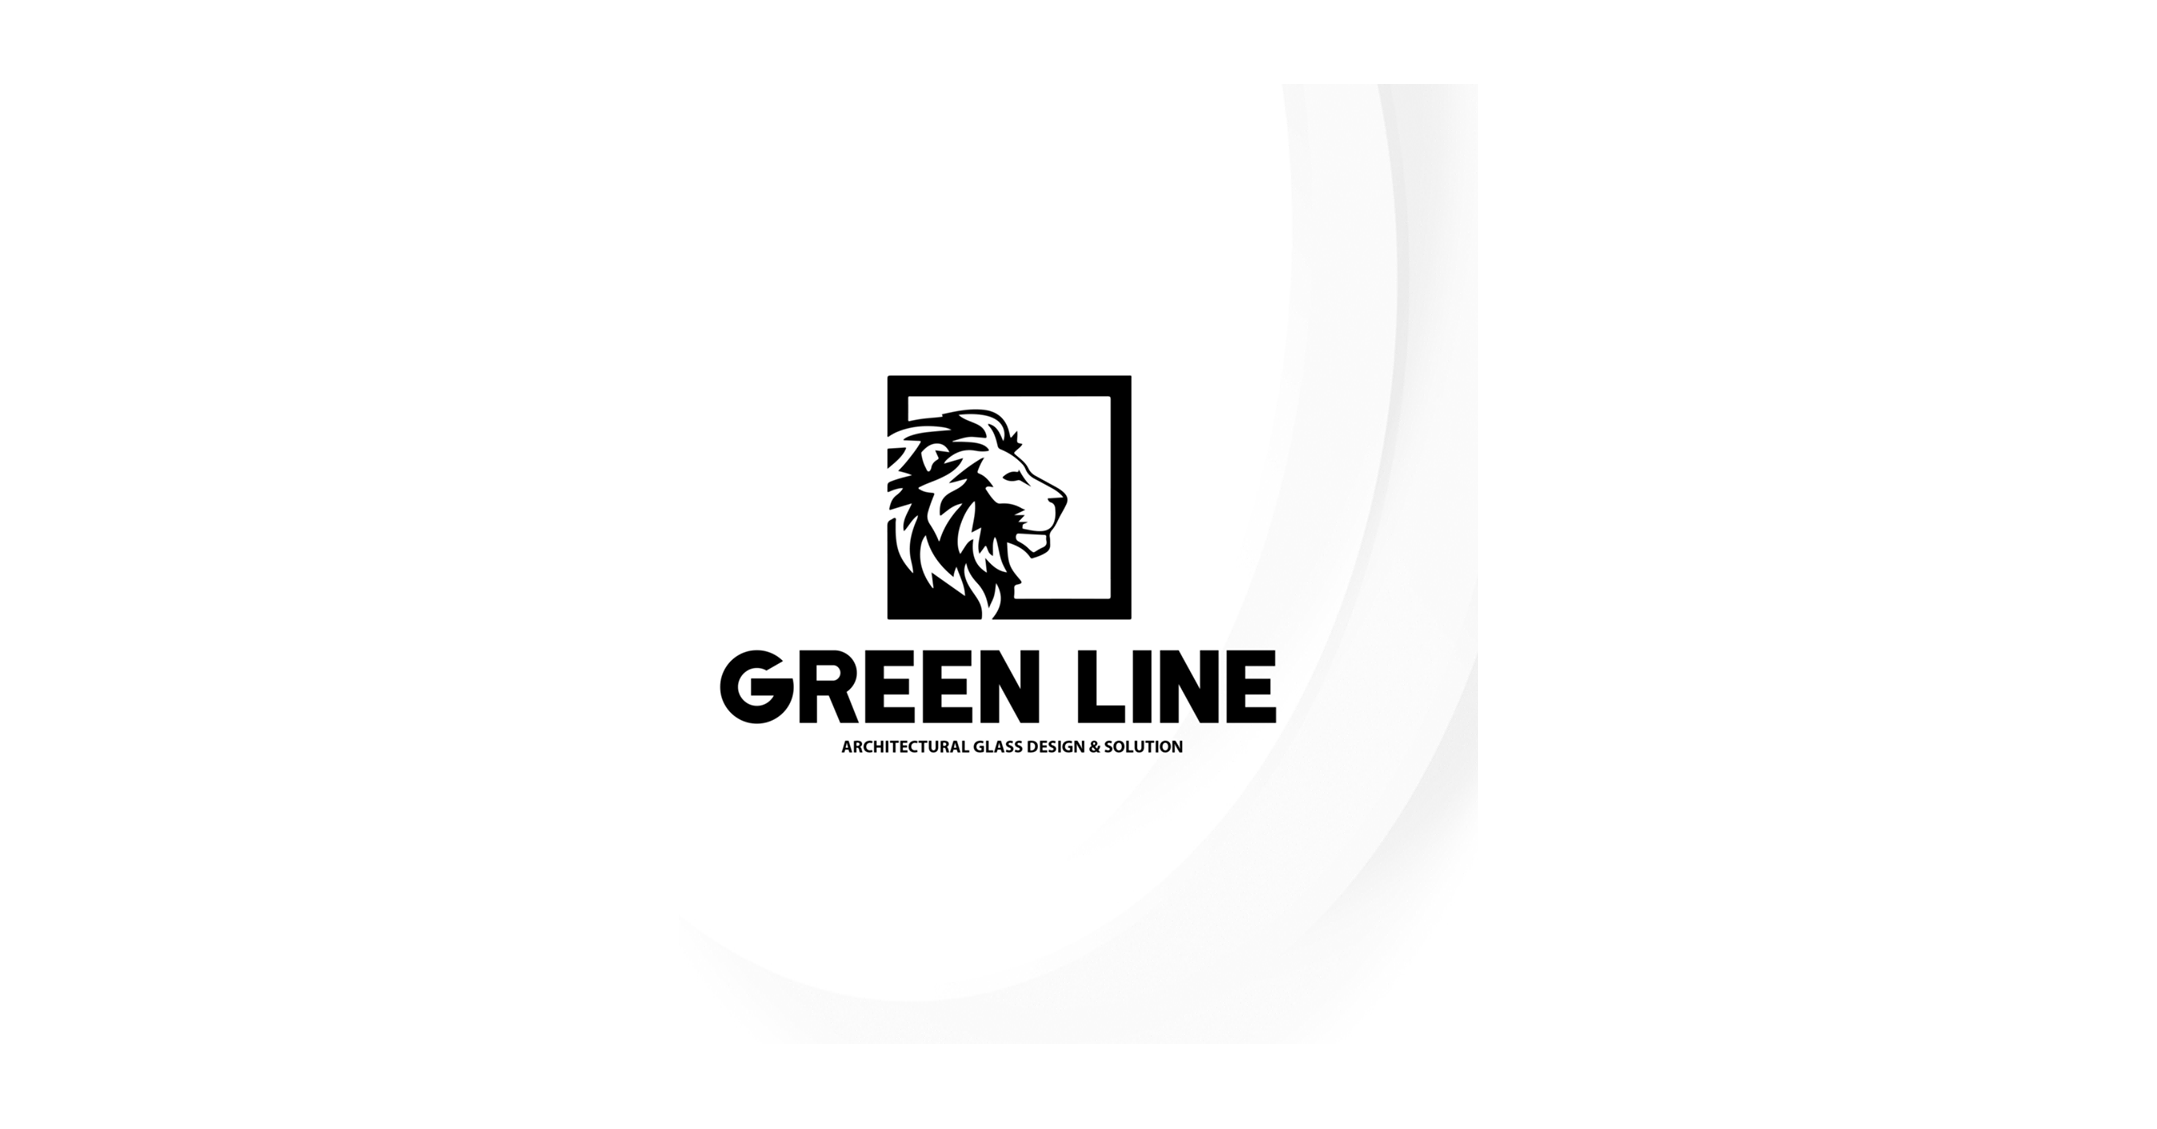 صورة Job: Sales Indoor Specialist – Females only at Green Line For Glass Metal Architecture in Cairo, Egypt